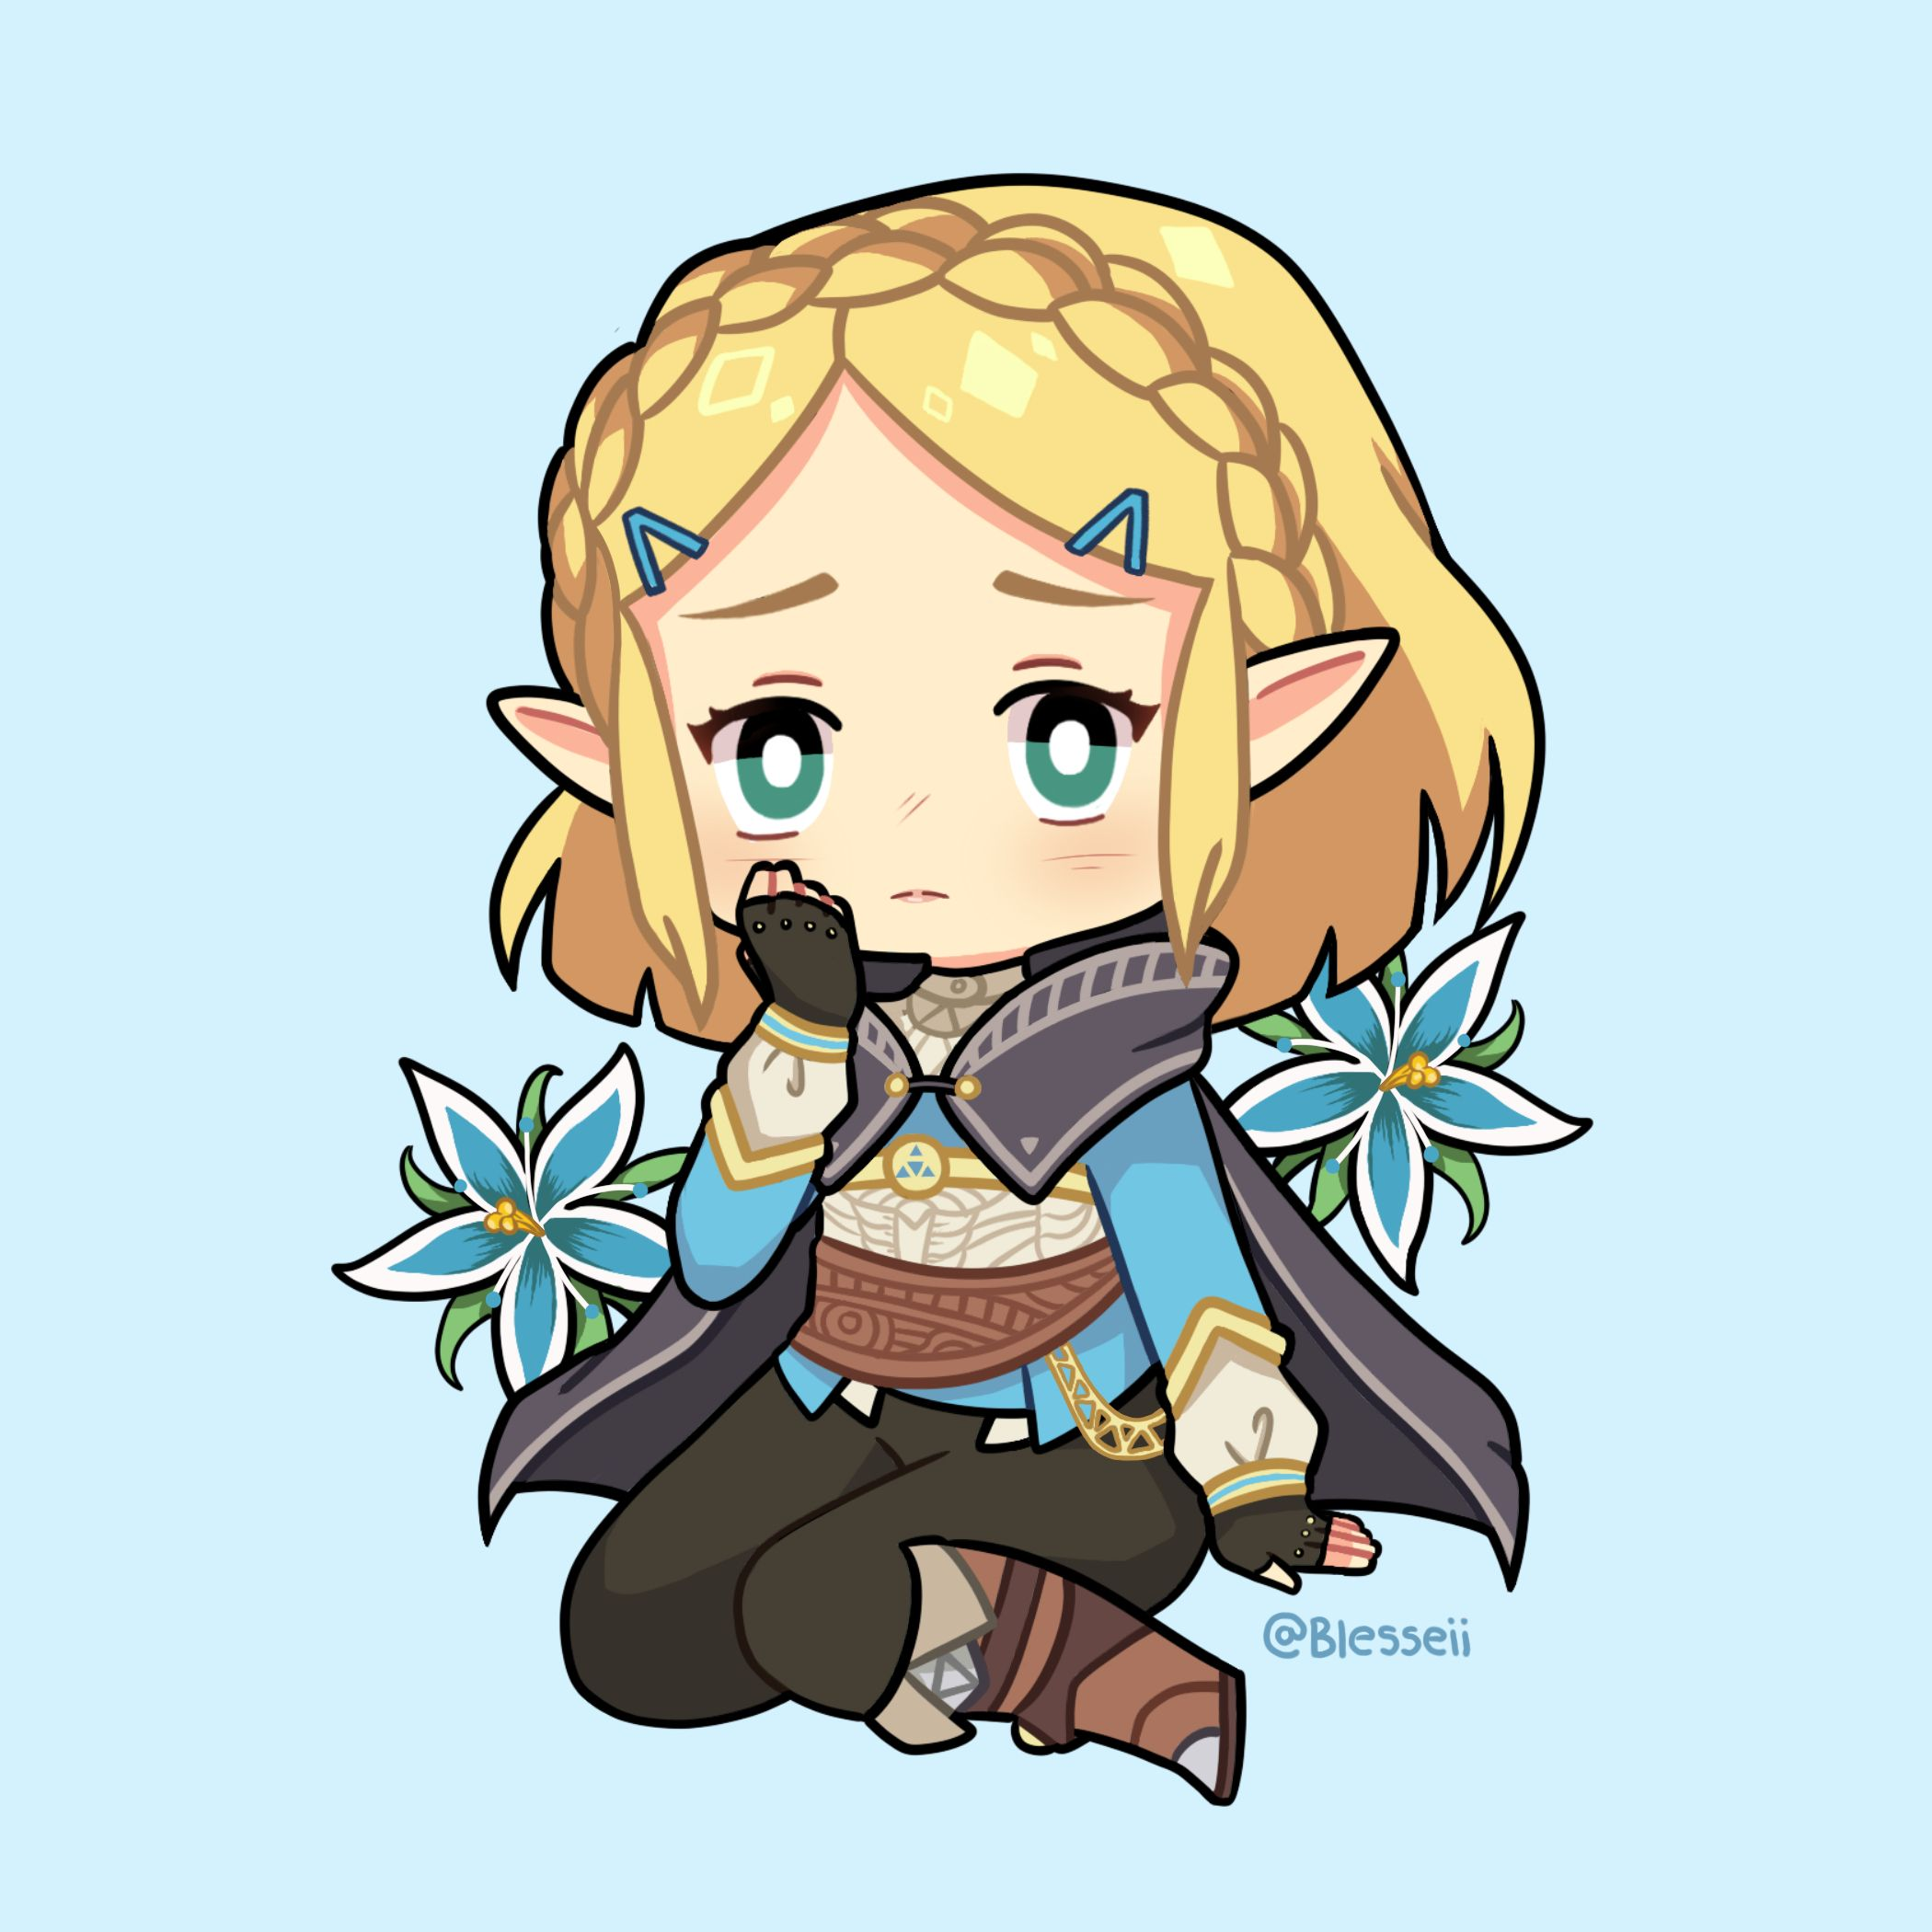 Short Haired Zelda Botw Oc I Posted This On Twitter And Ig I Thought I D Share Here Too U Character Art Chibi Legend Of Zelda